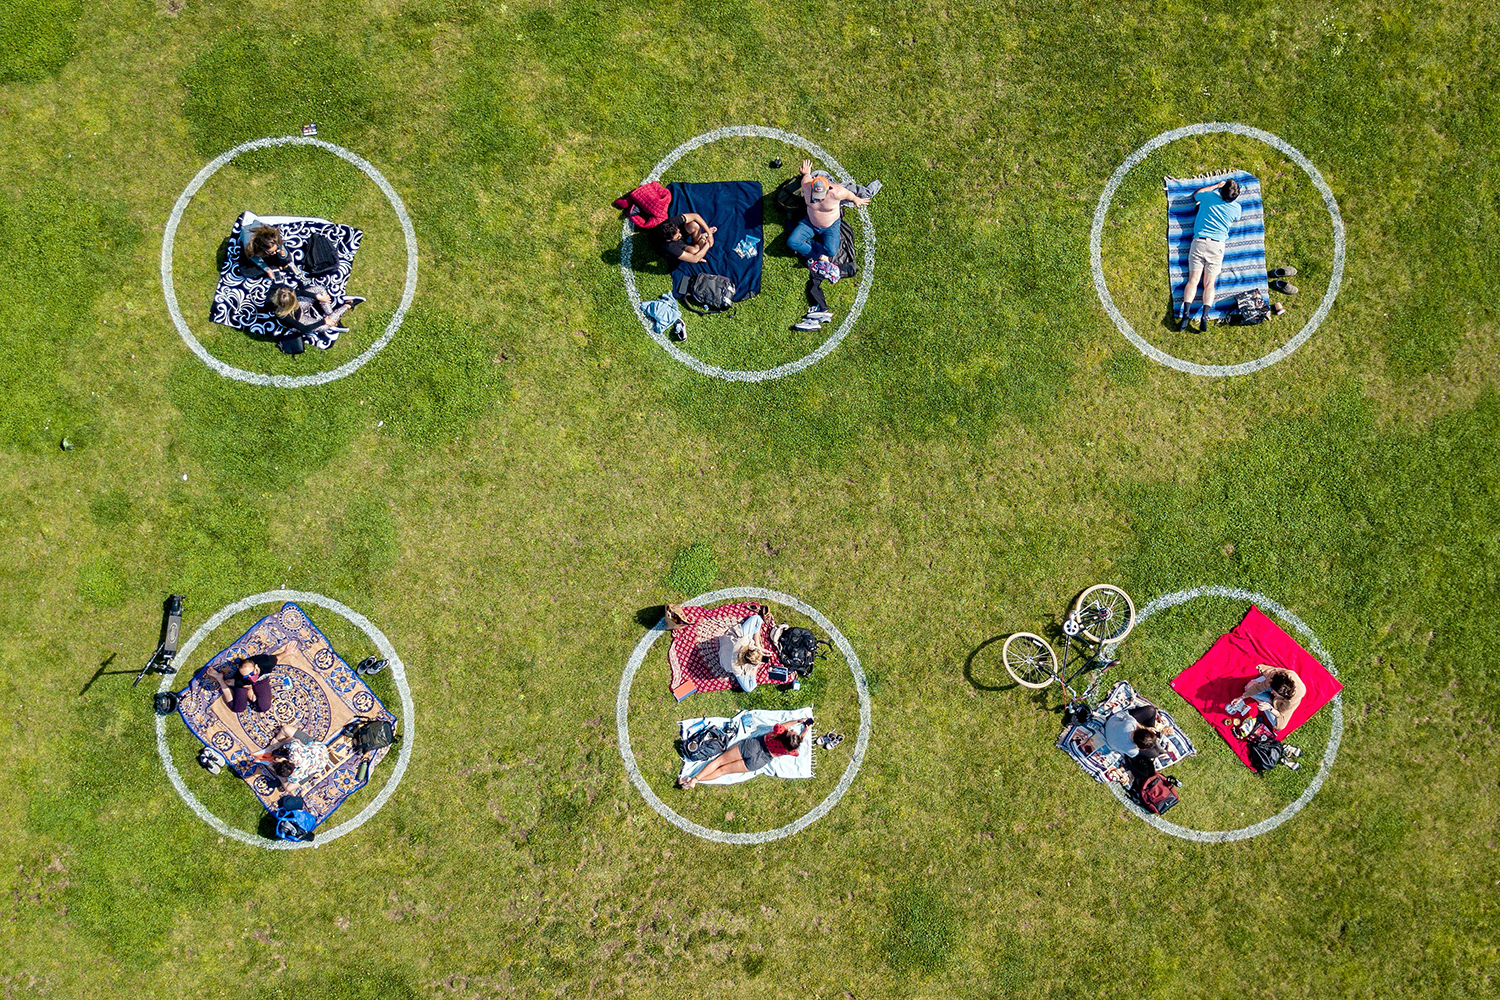 People gather inside painted circles on the grass, which encourage social distancing, at Dolores Park in San Francisco, California, on May 22. JOSH EDELSON/AFP via Getty Images